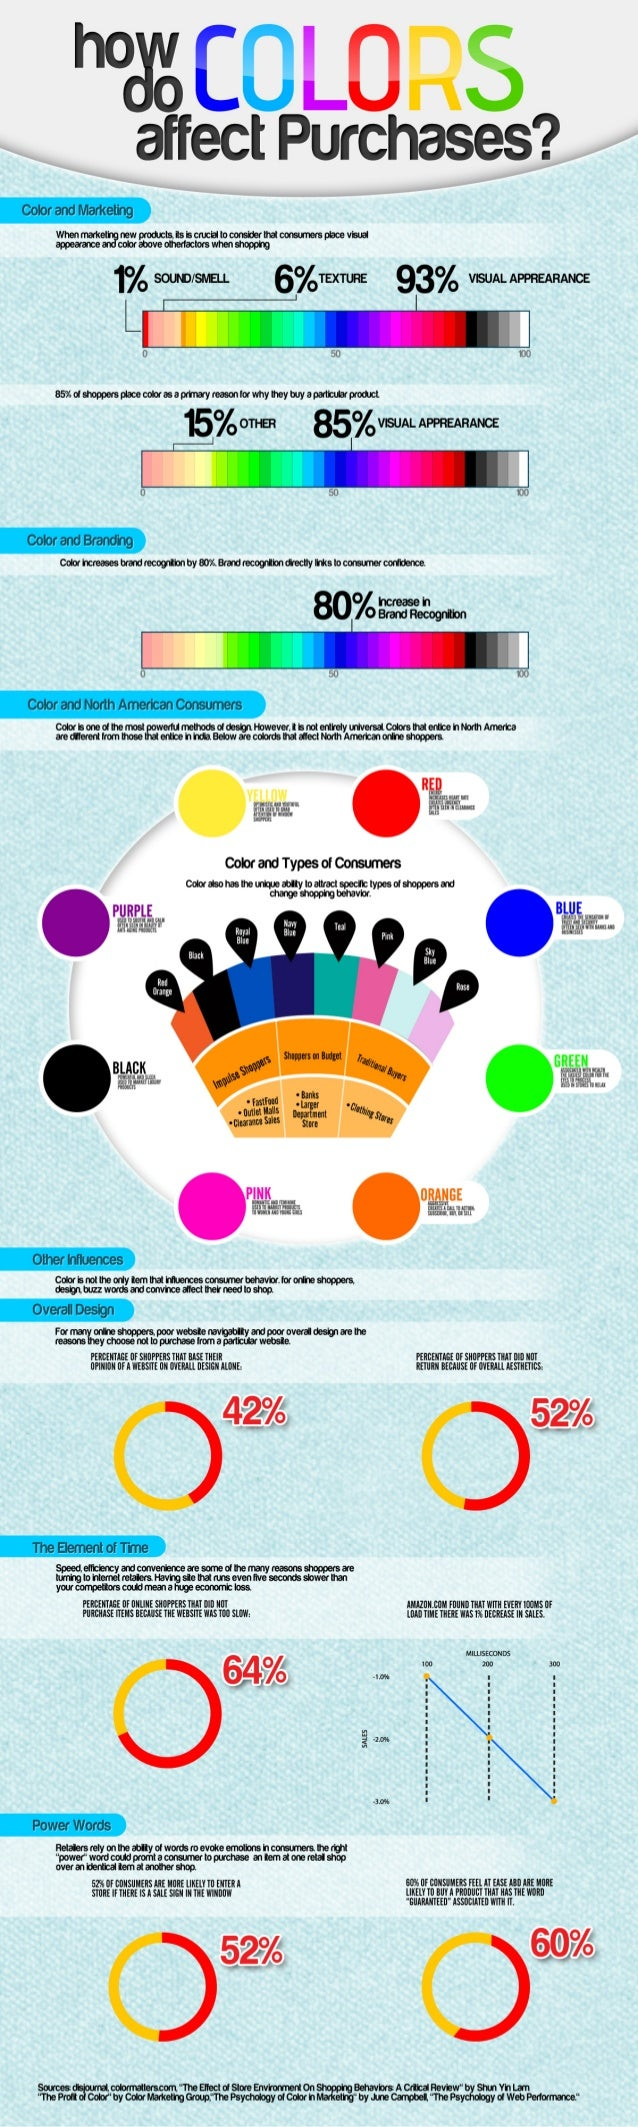 How do-colors-affect-purchases-infographic-2